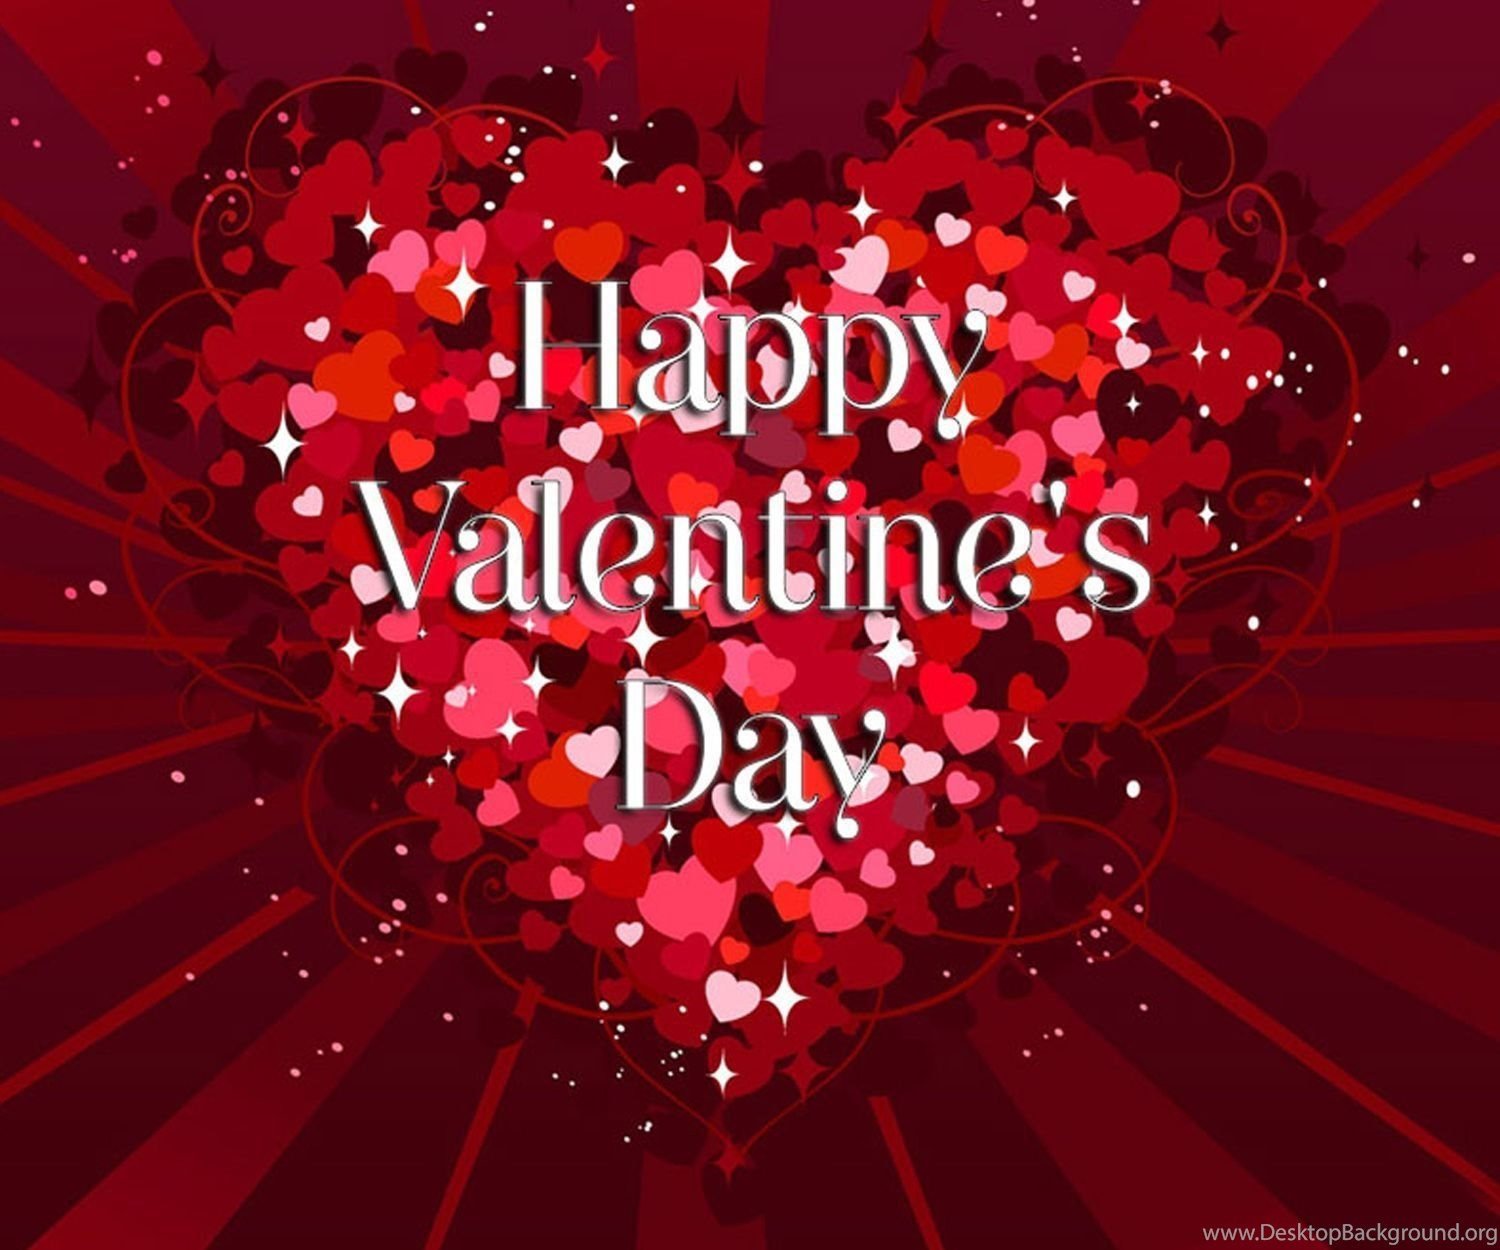 galen happy galentines day - HD 1280×1024